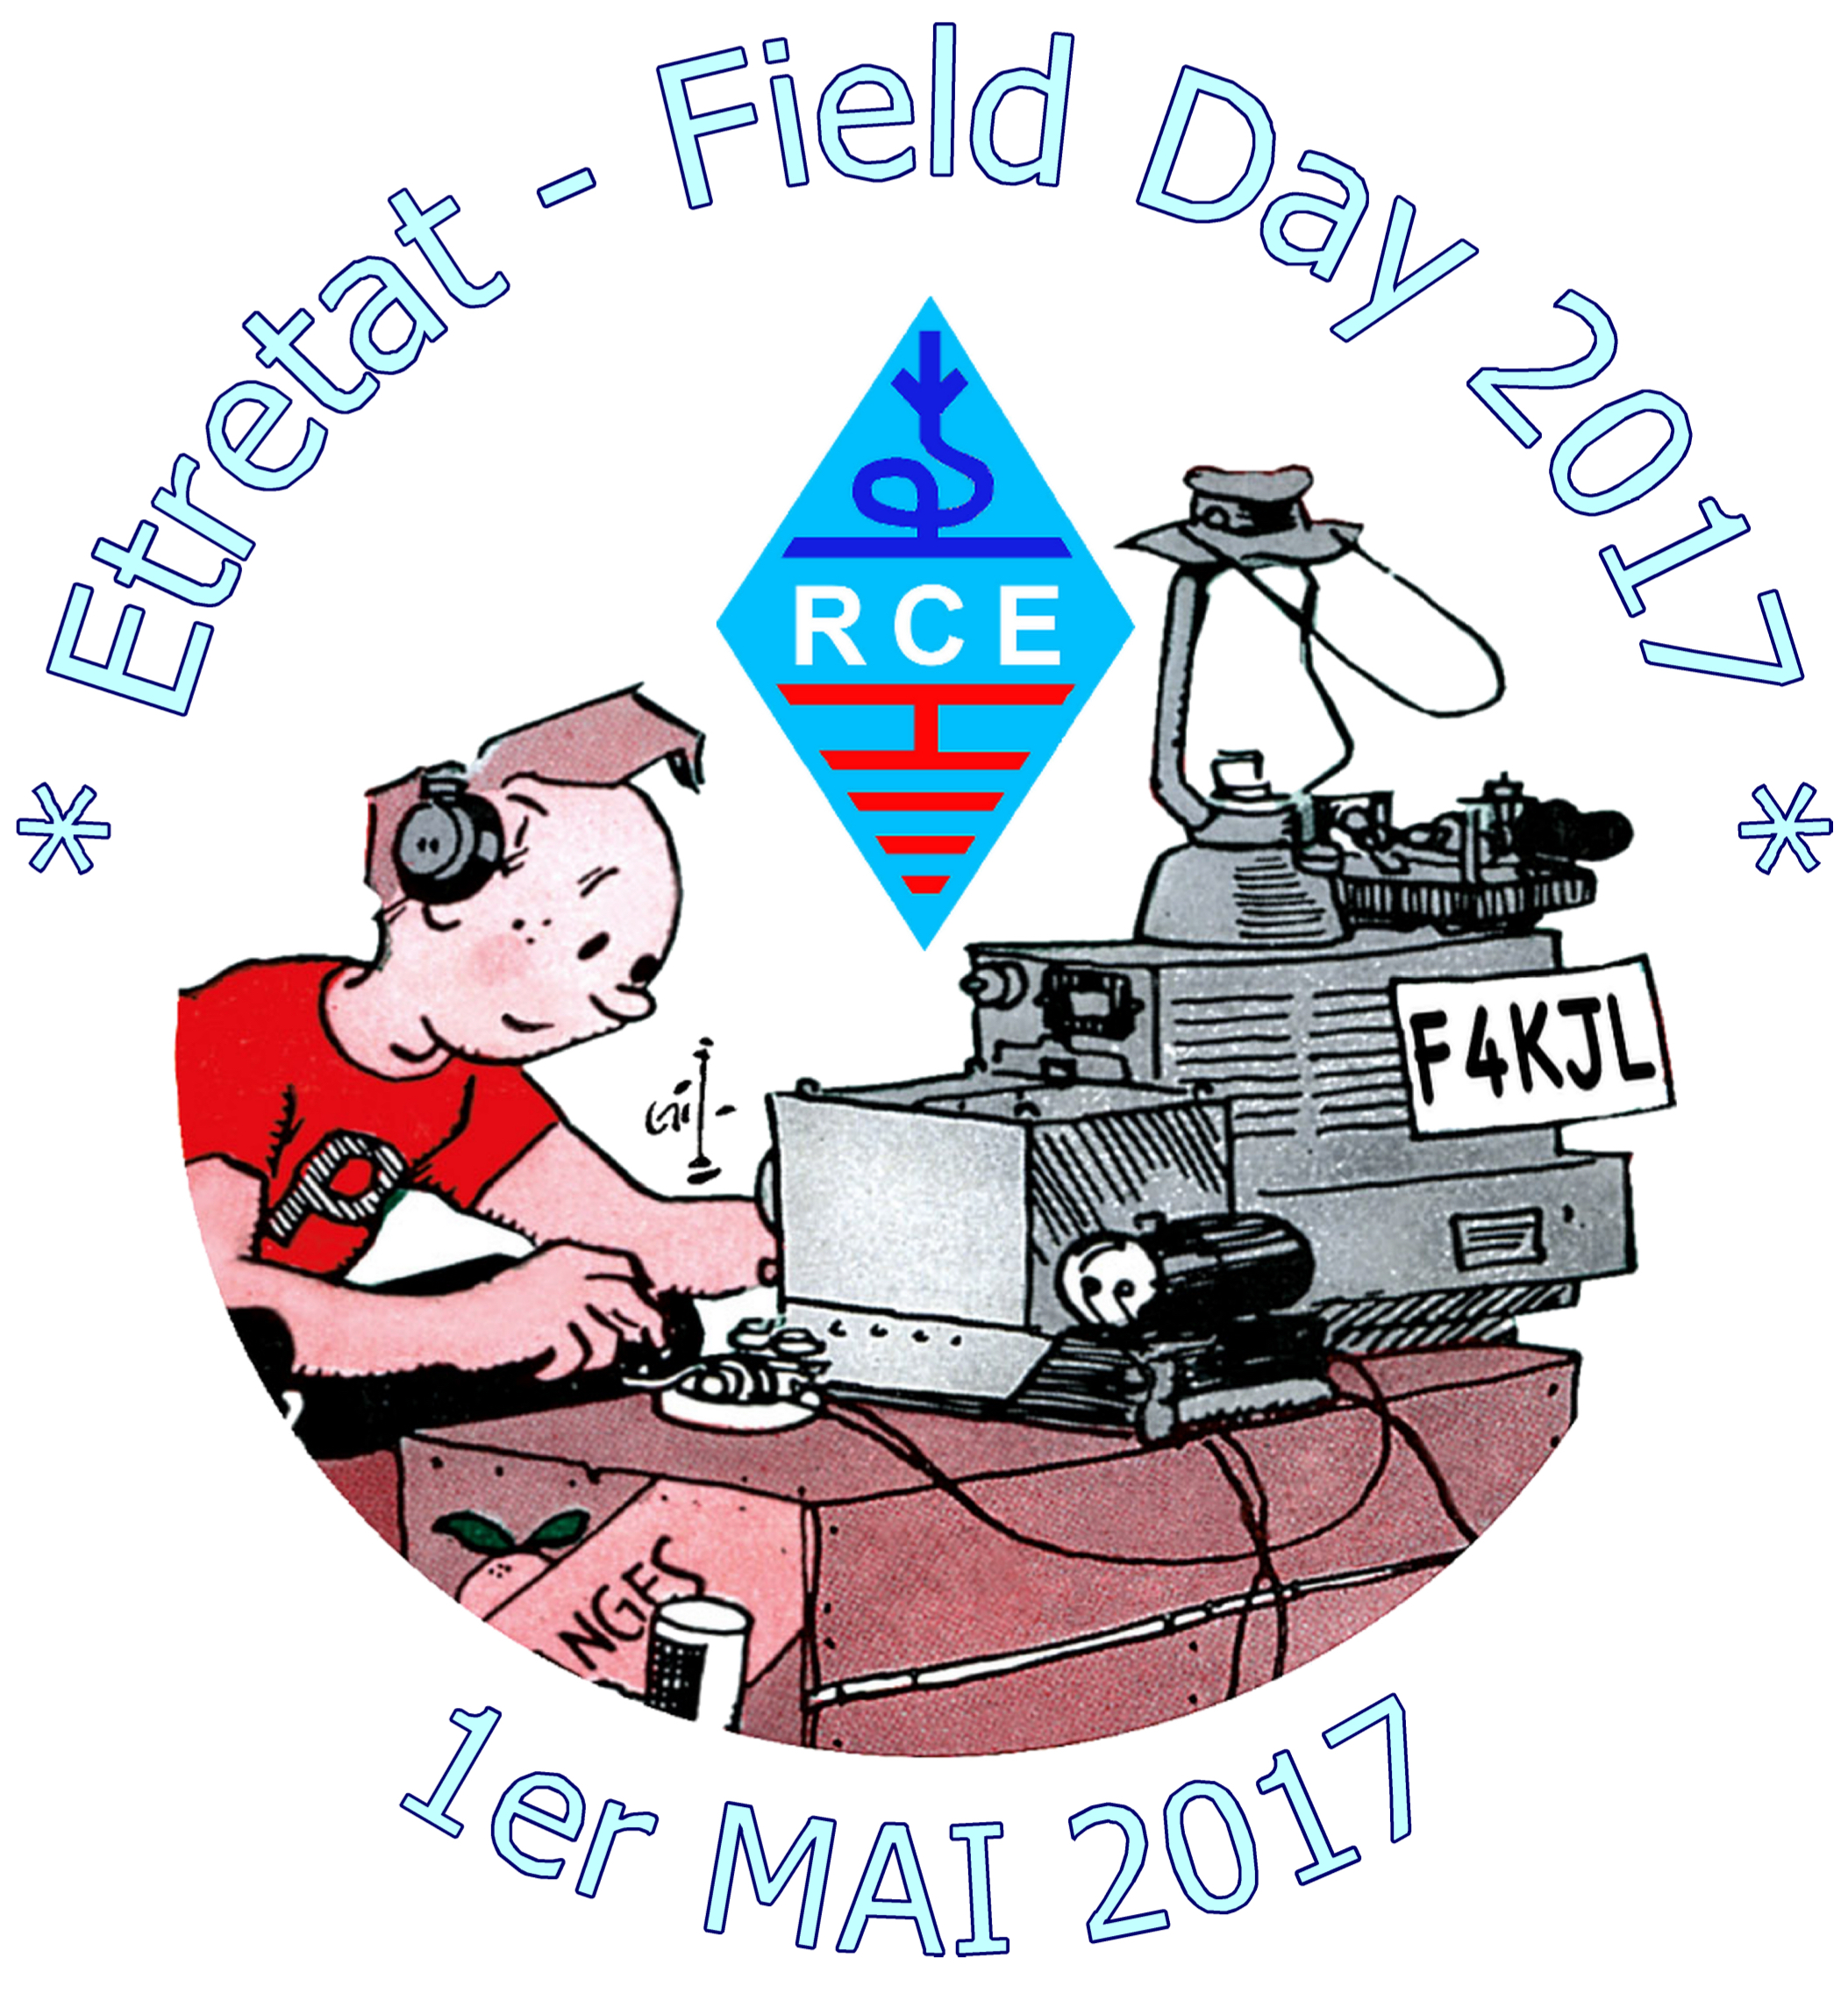 [RCE] Field Day 2017